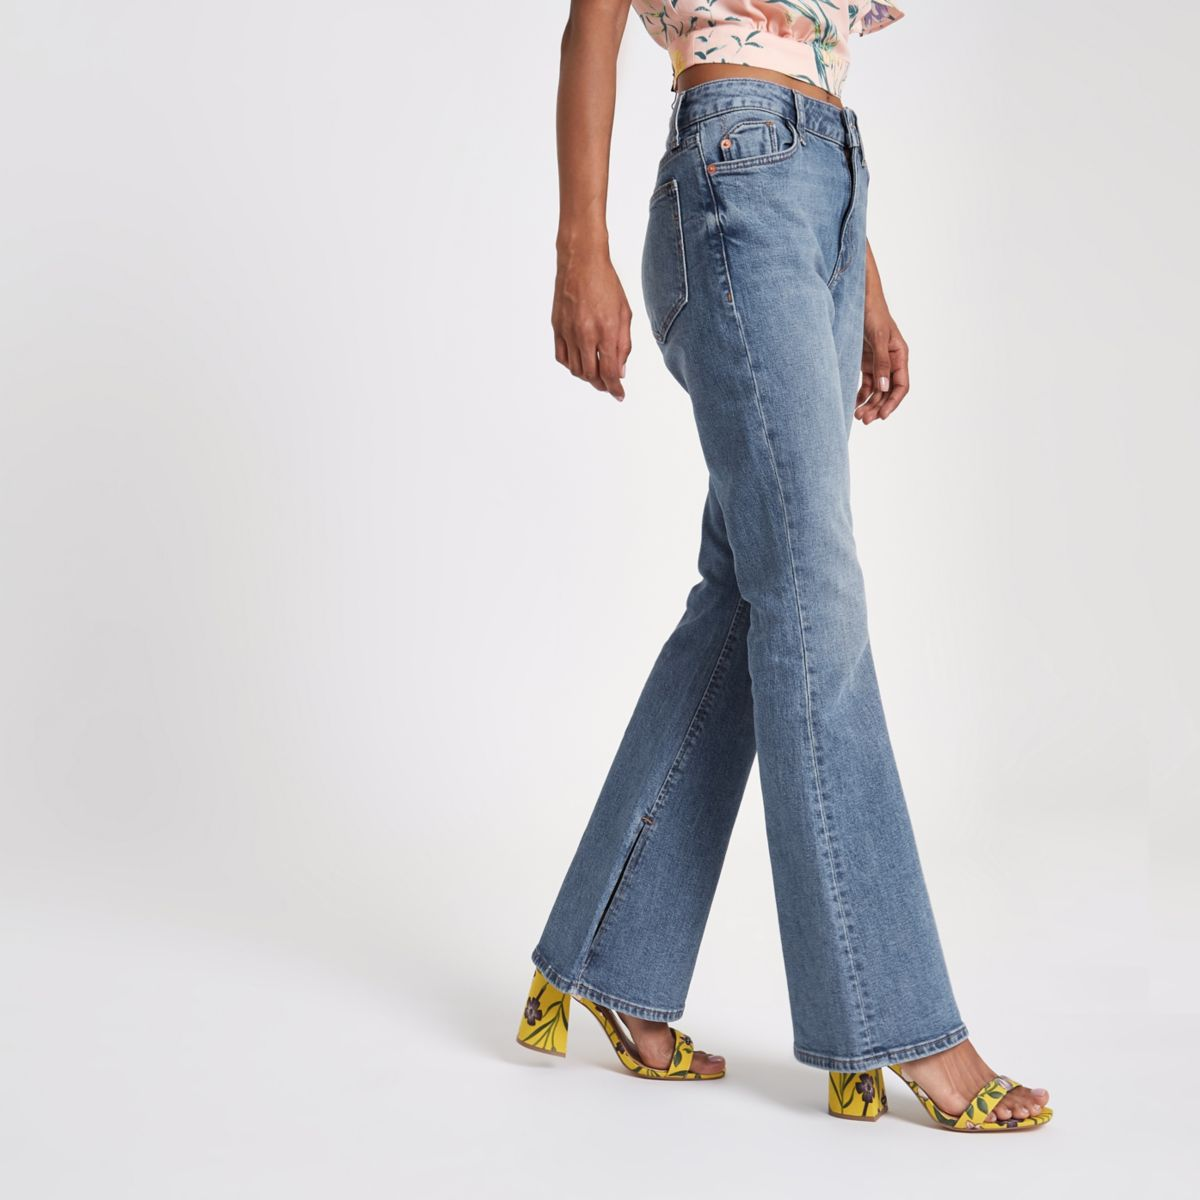 Petite blue wash flared jeans